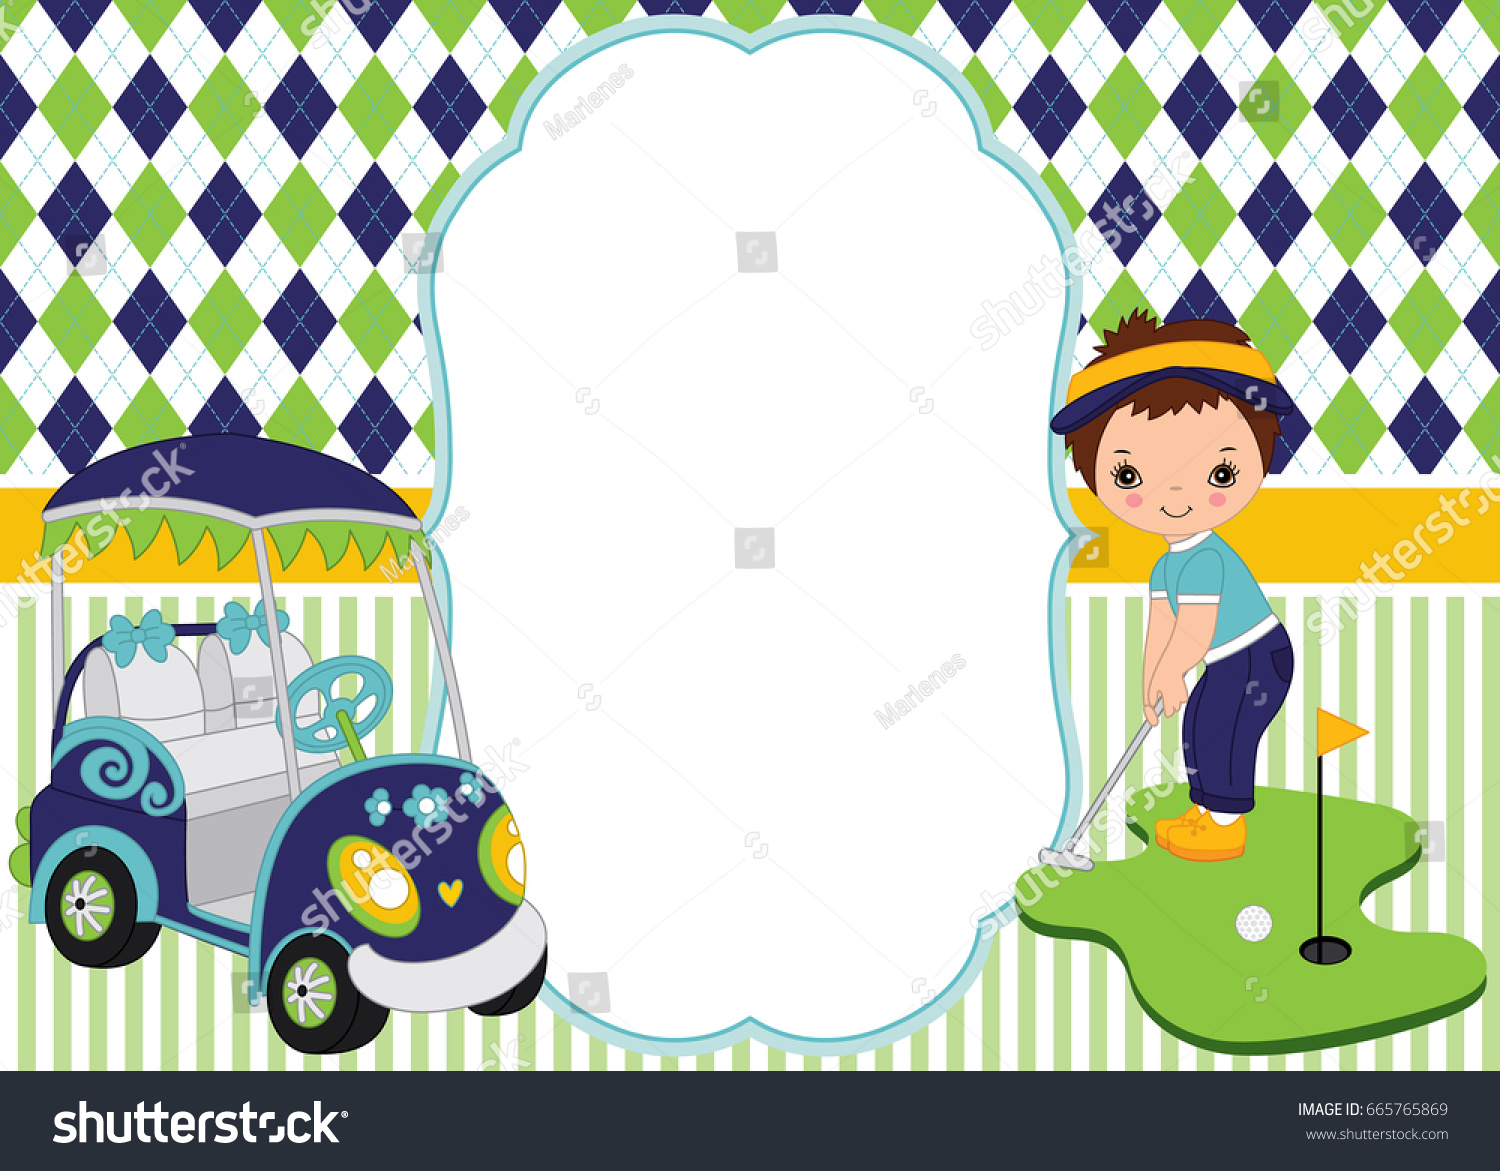 vector card template cute little boy stock vector (royalty free